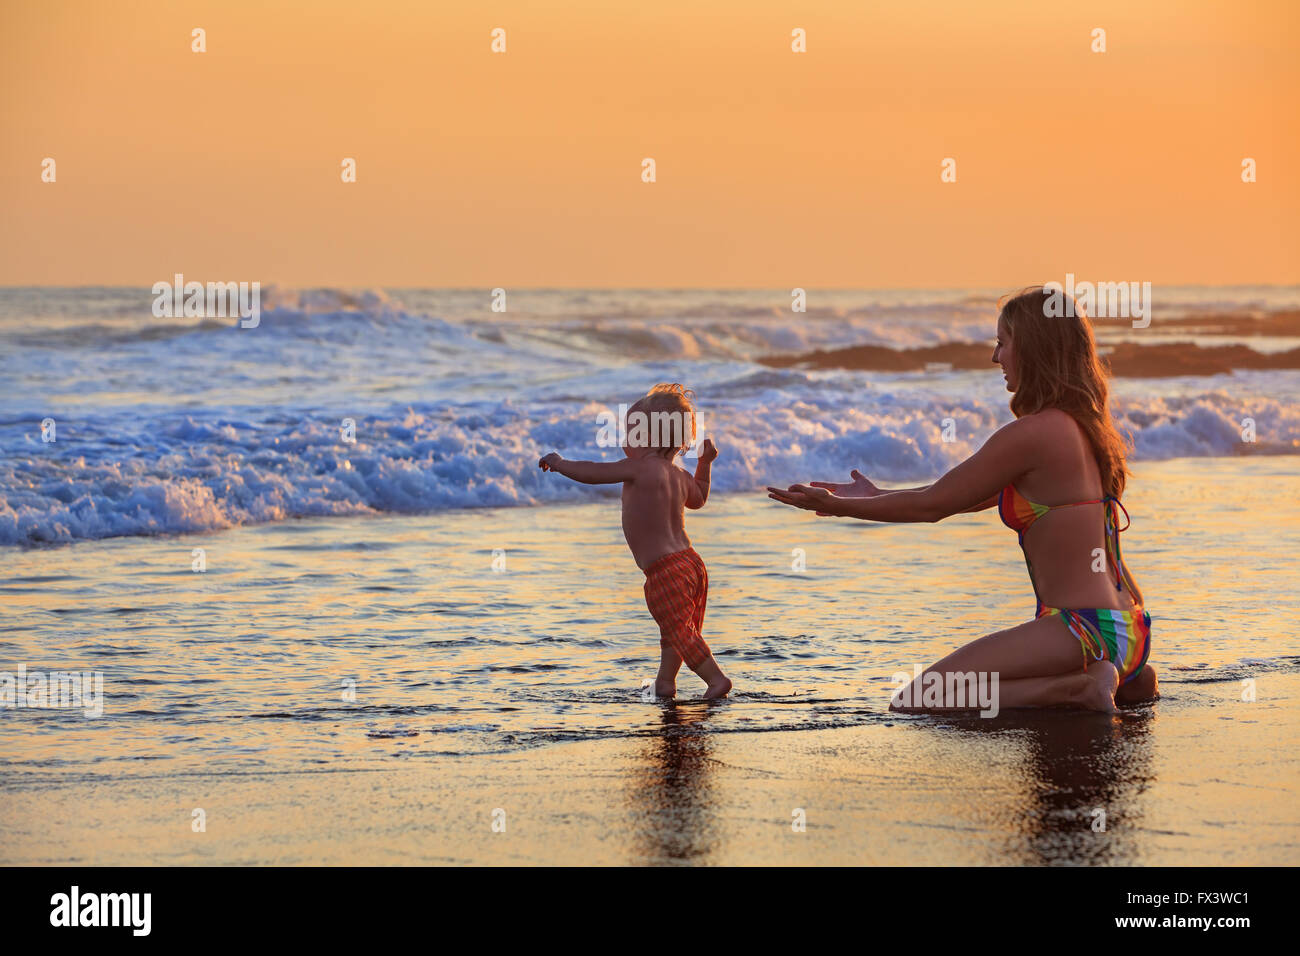 Family swimming fun in sea beach surf Happy mother, baby son first step - toddler run to ocean wave on sunset sky - Stock Image